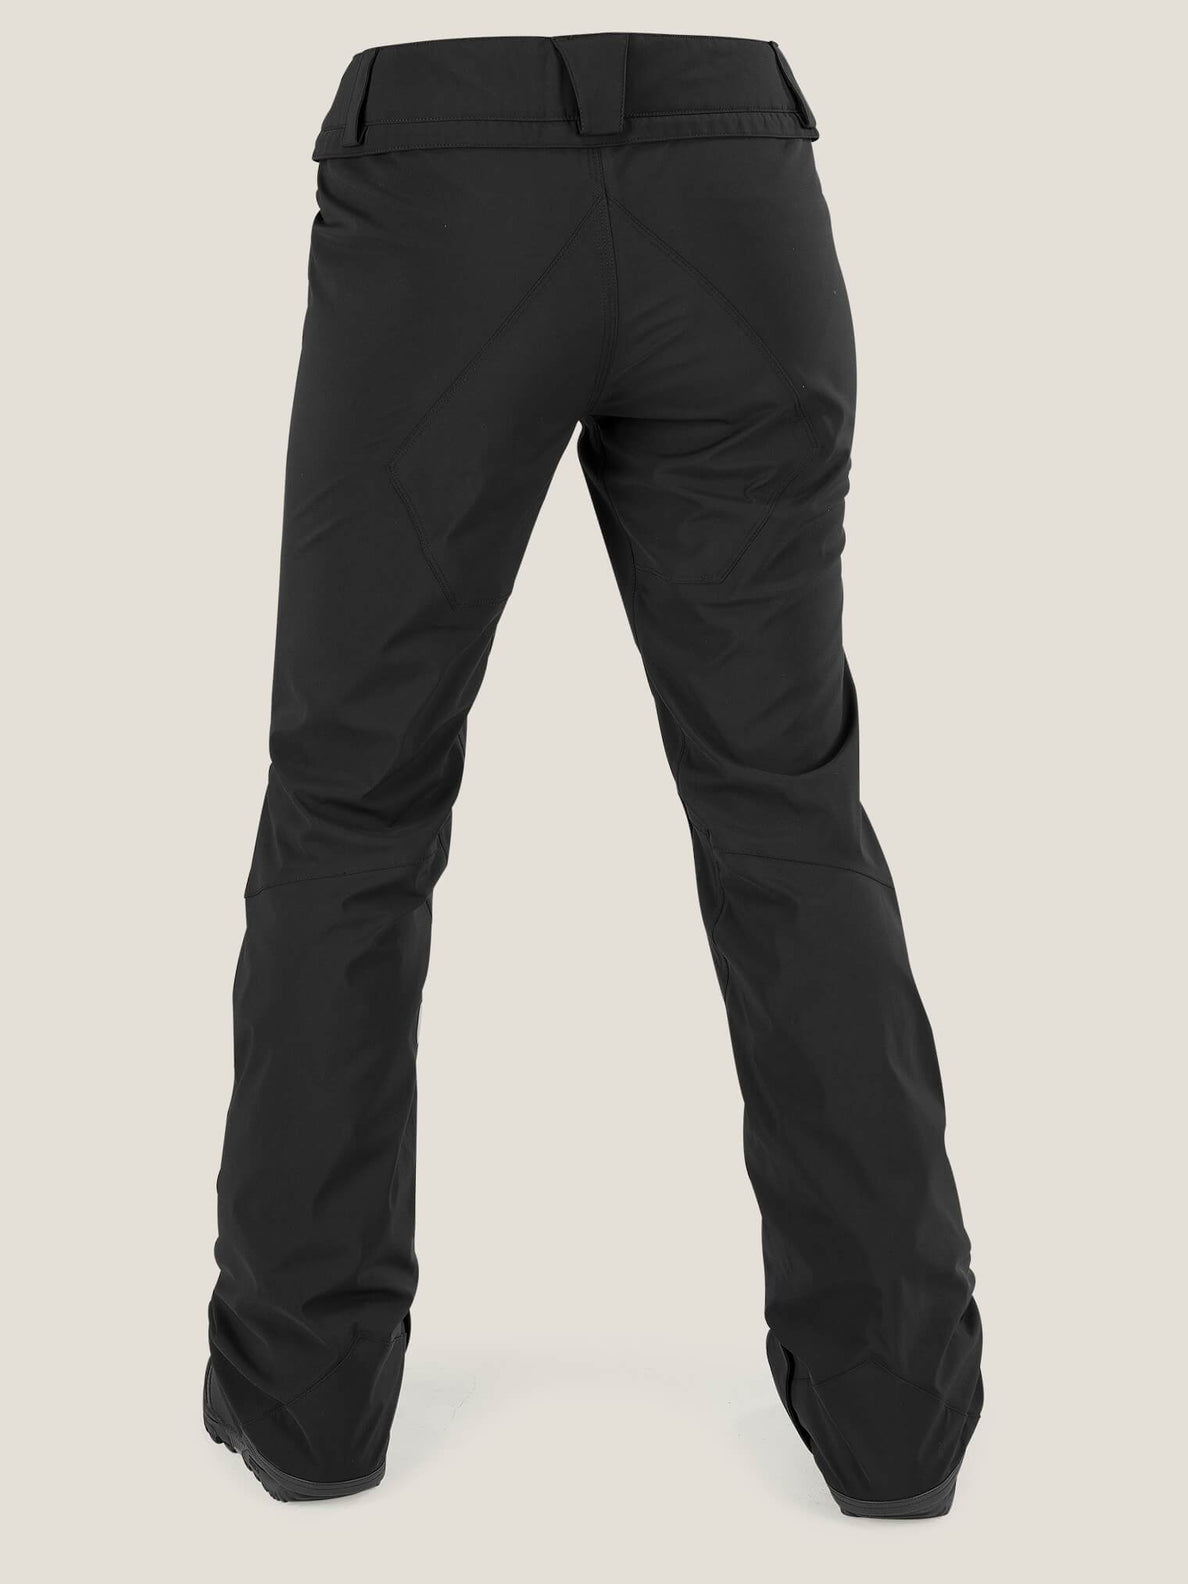 Pvn Gore-tex® Stretch Pant In Black, Back View